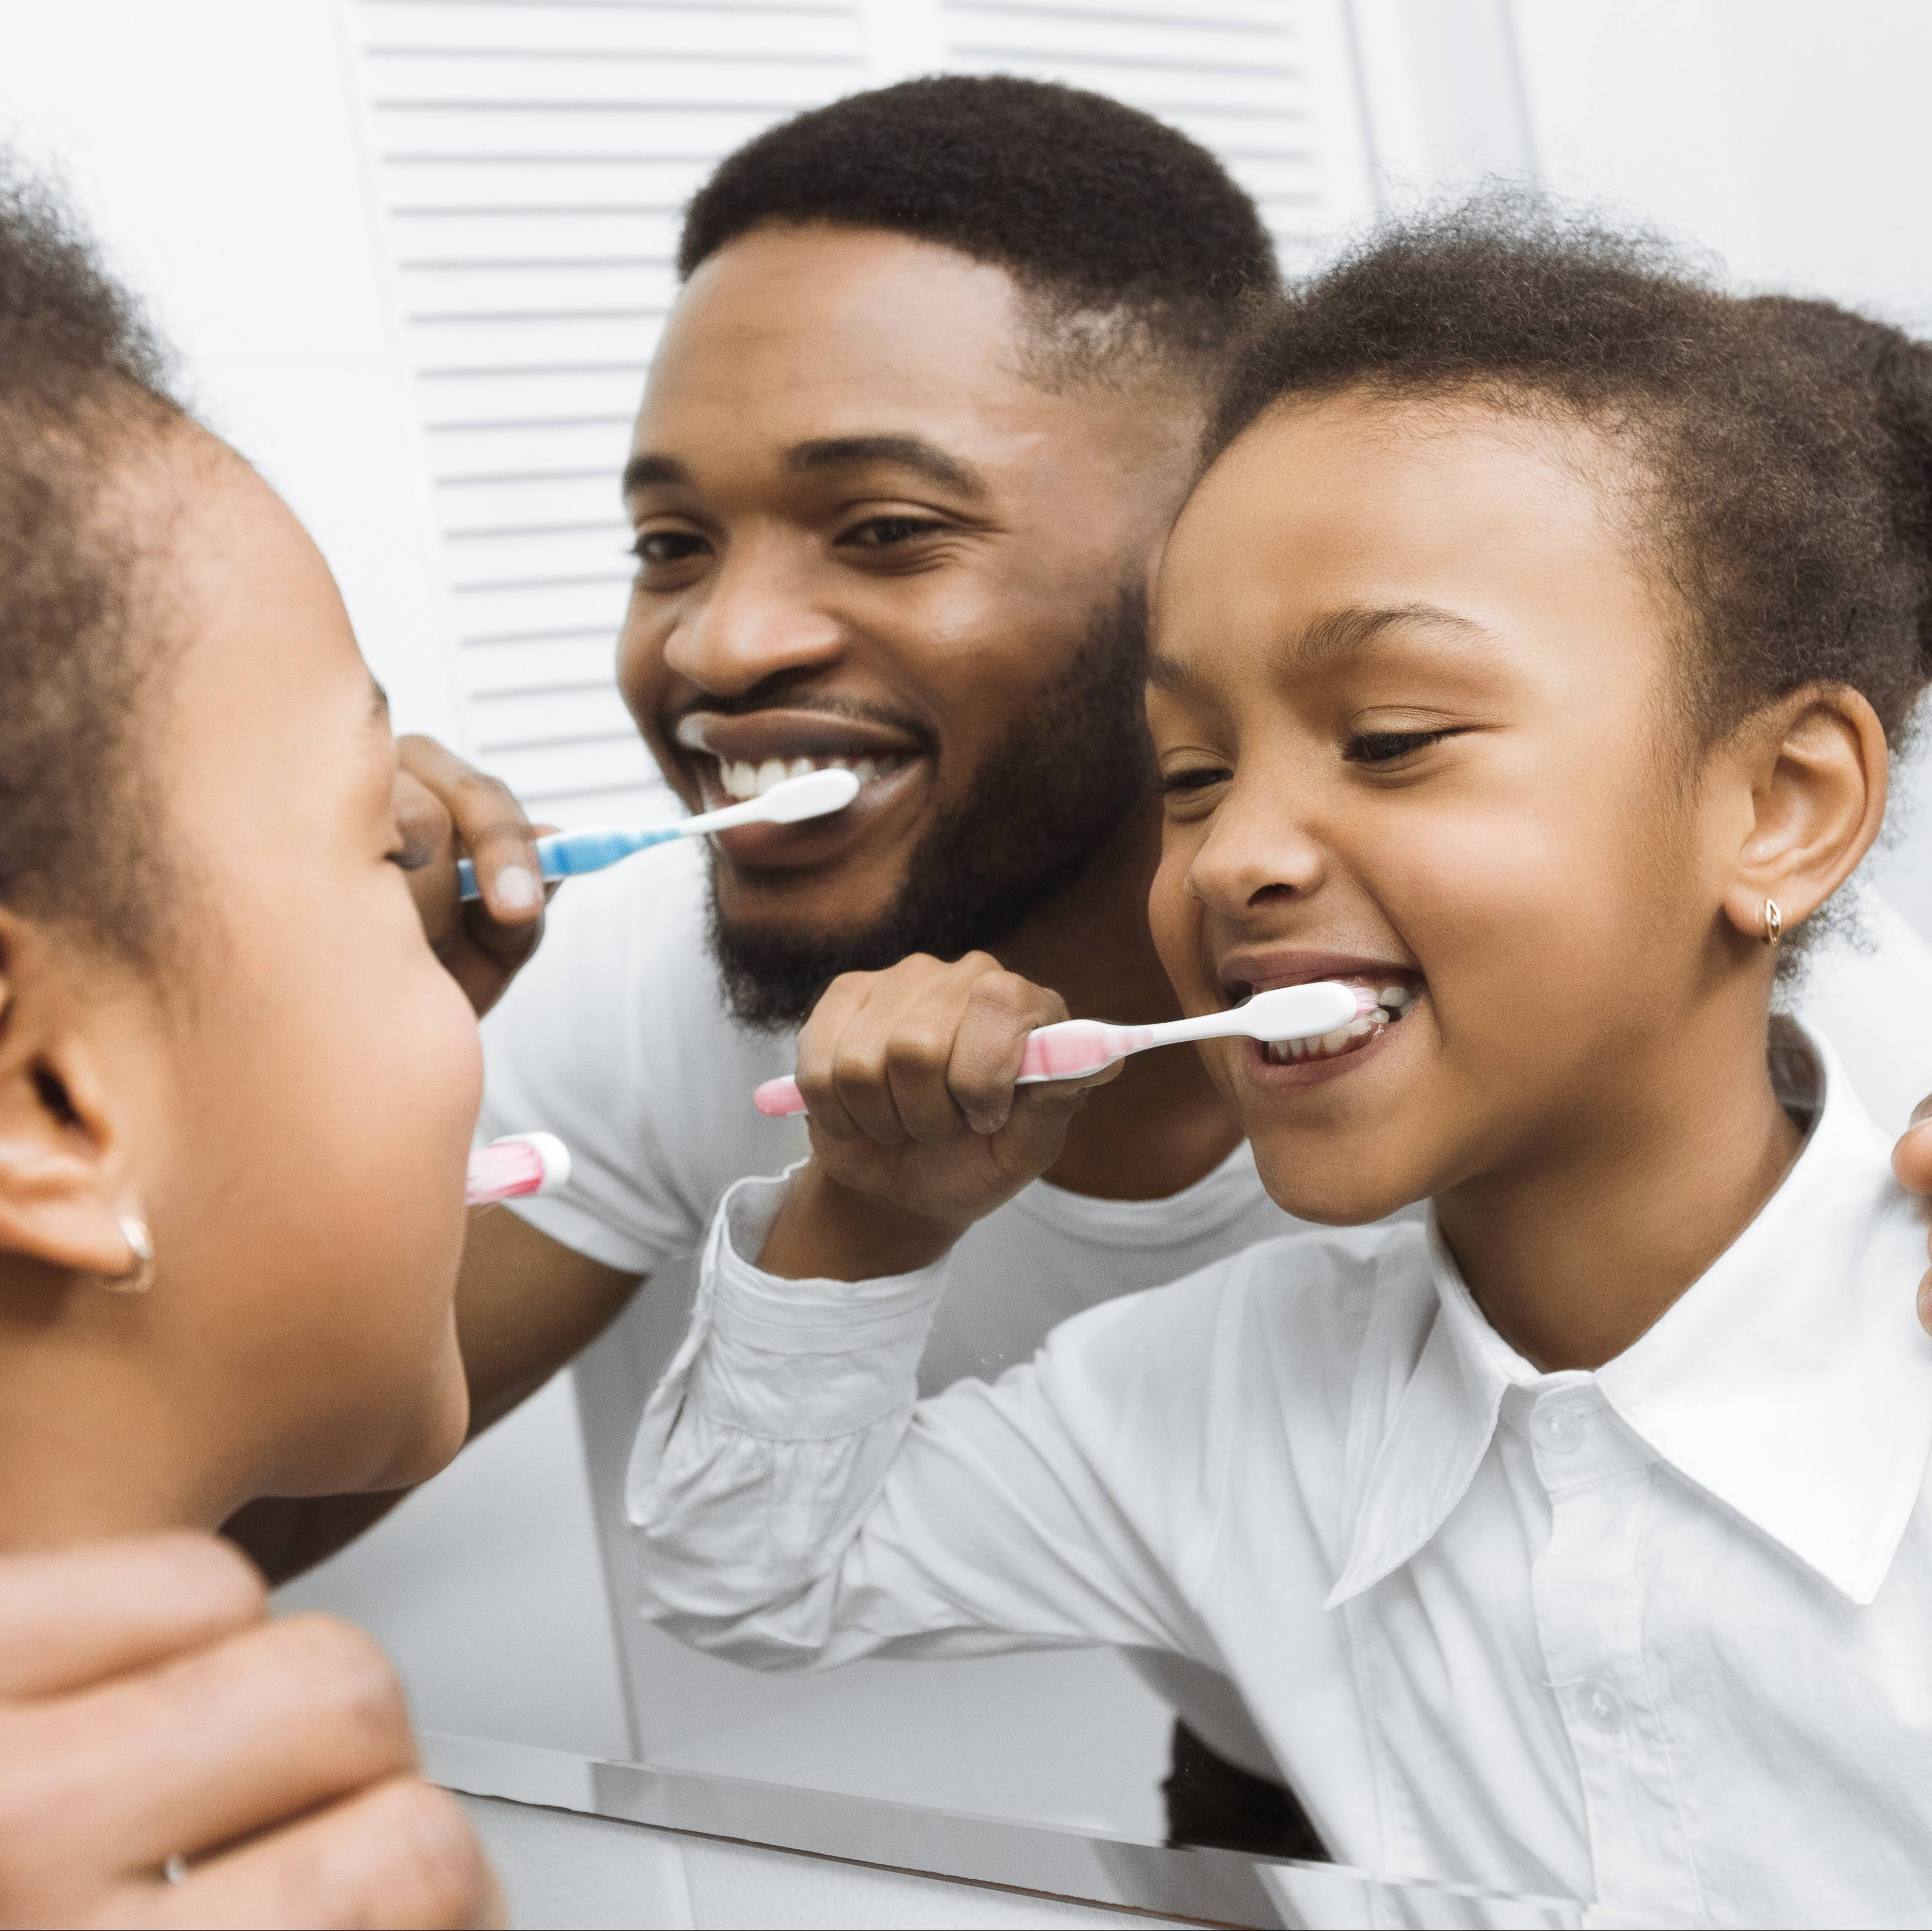 a little African American girl looking in the mirror and brushing her teeth, with perhaps her African American father looking over her shoulder and brushing his teeth, too